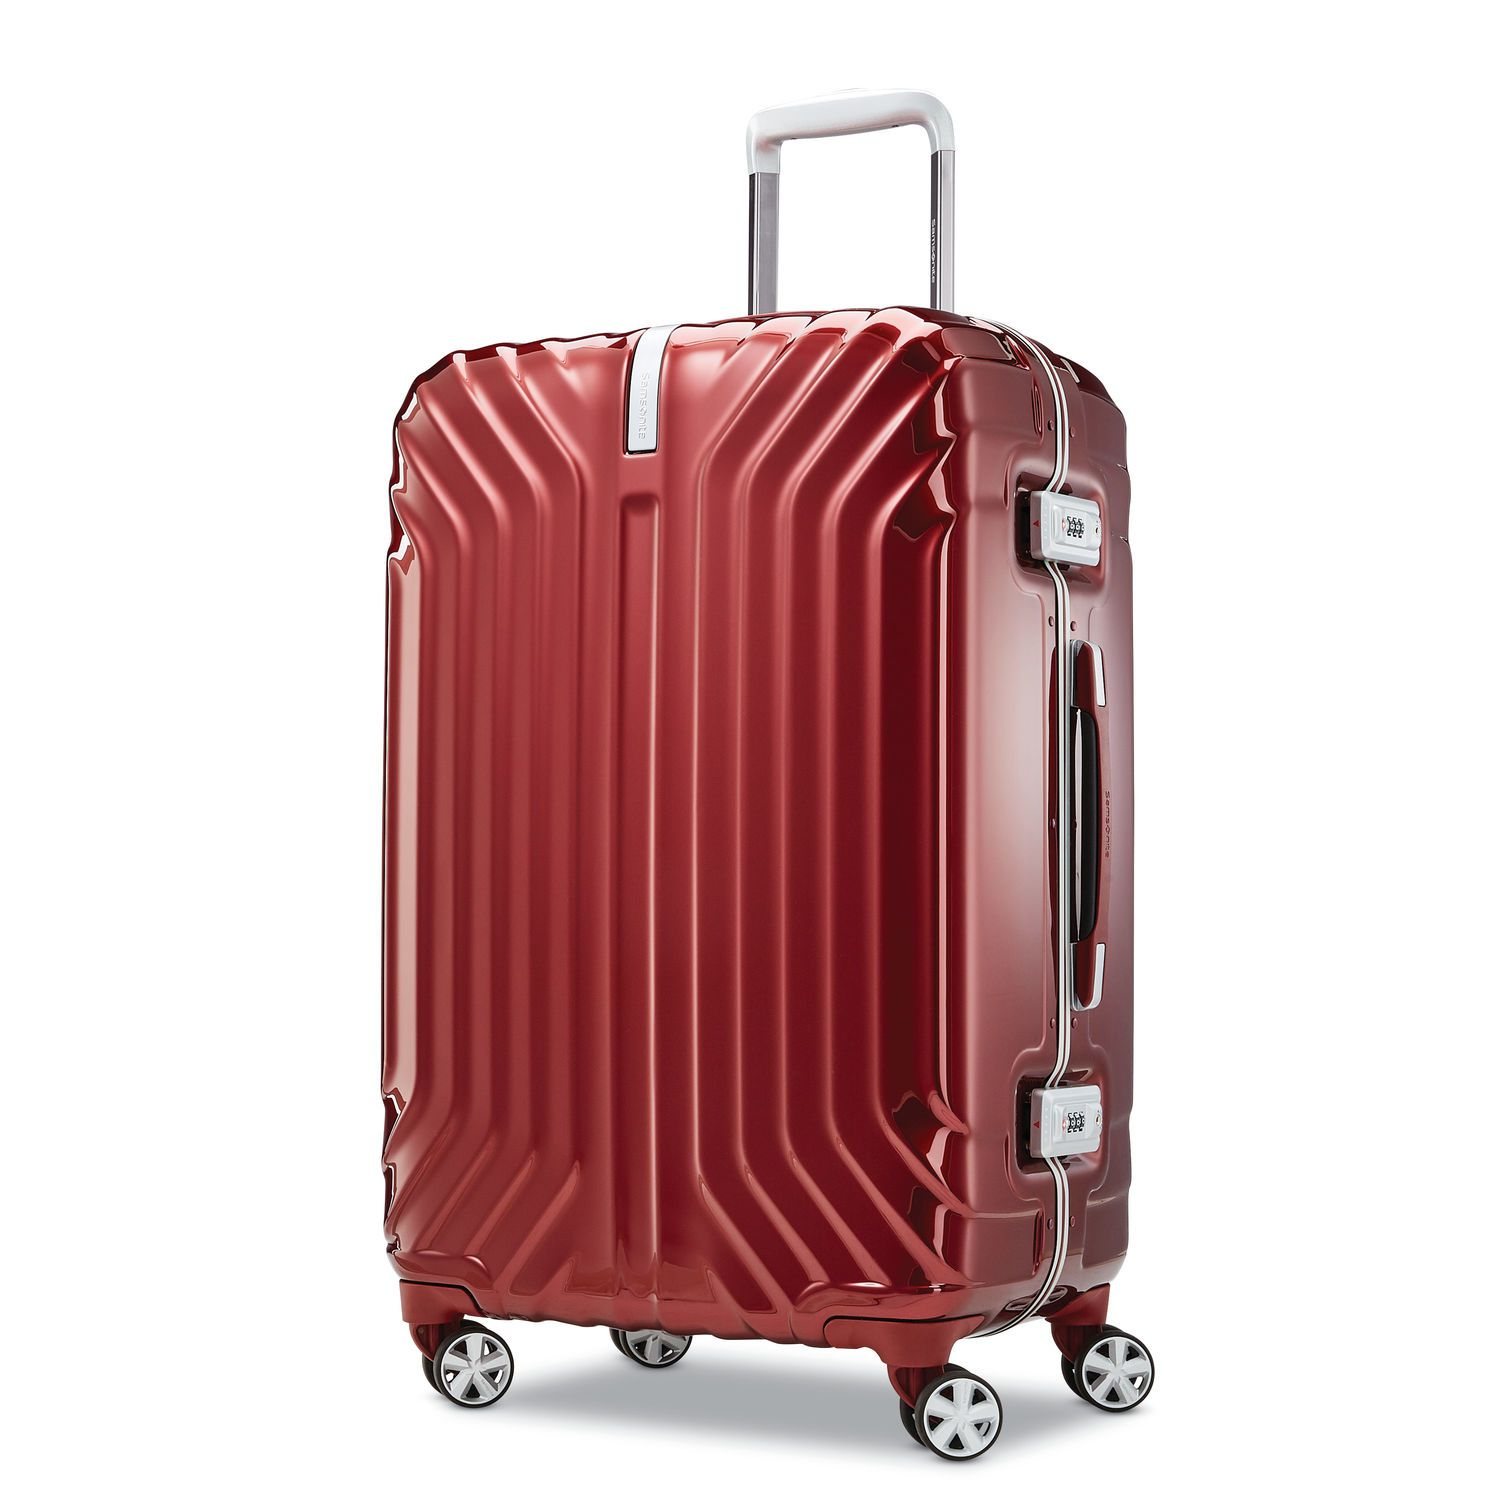 Best Luggage Brands 2020.The 10 Best Luggage Brands Of 2019